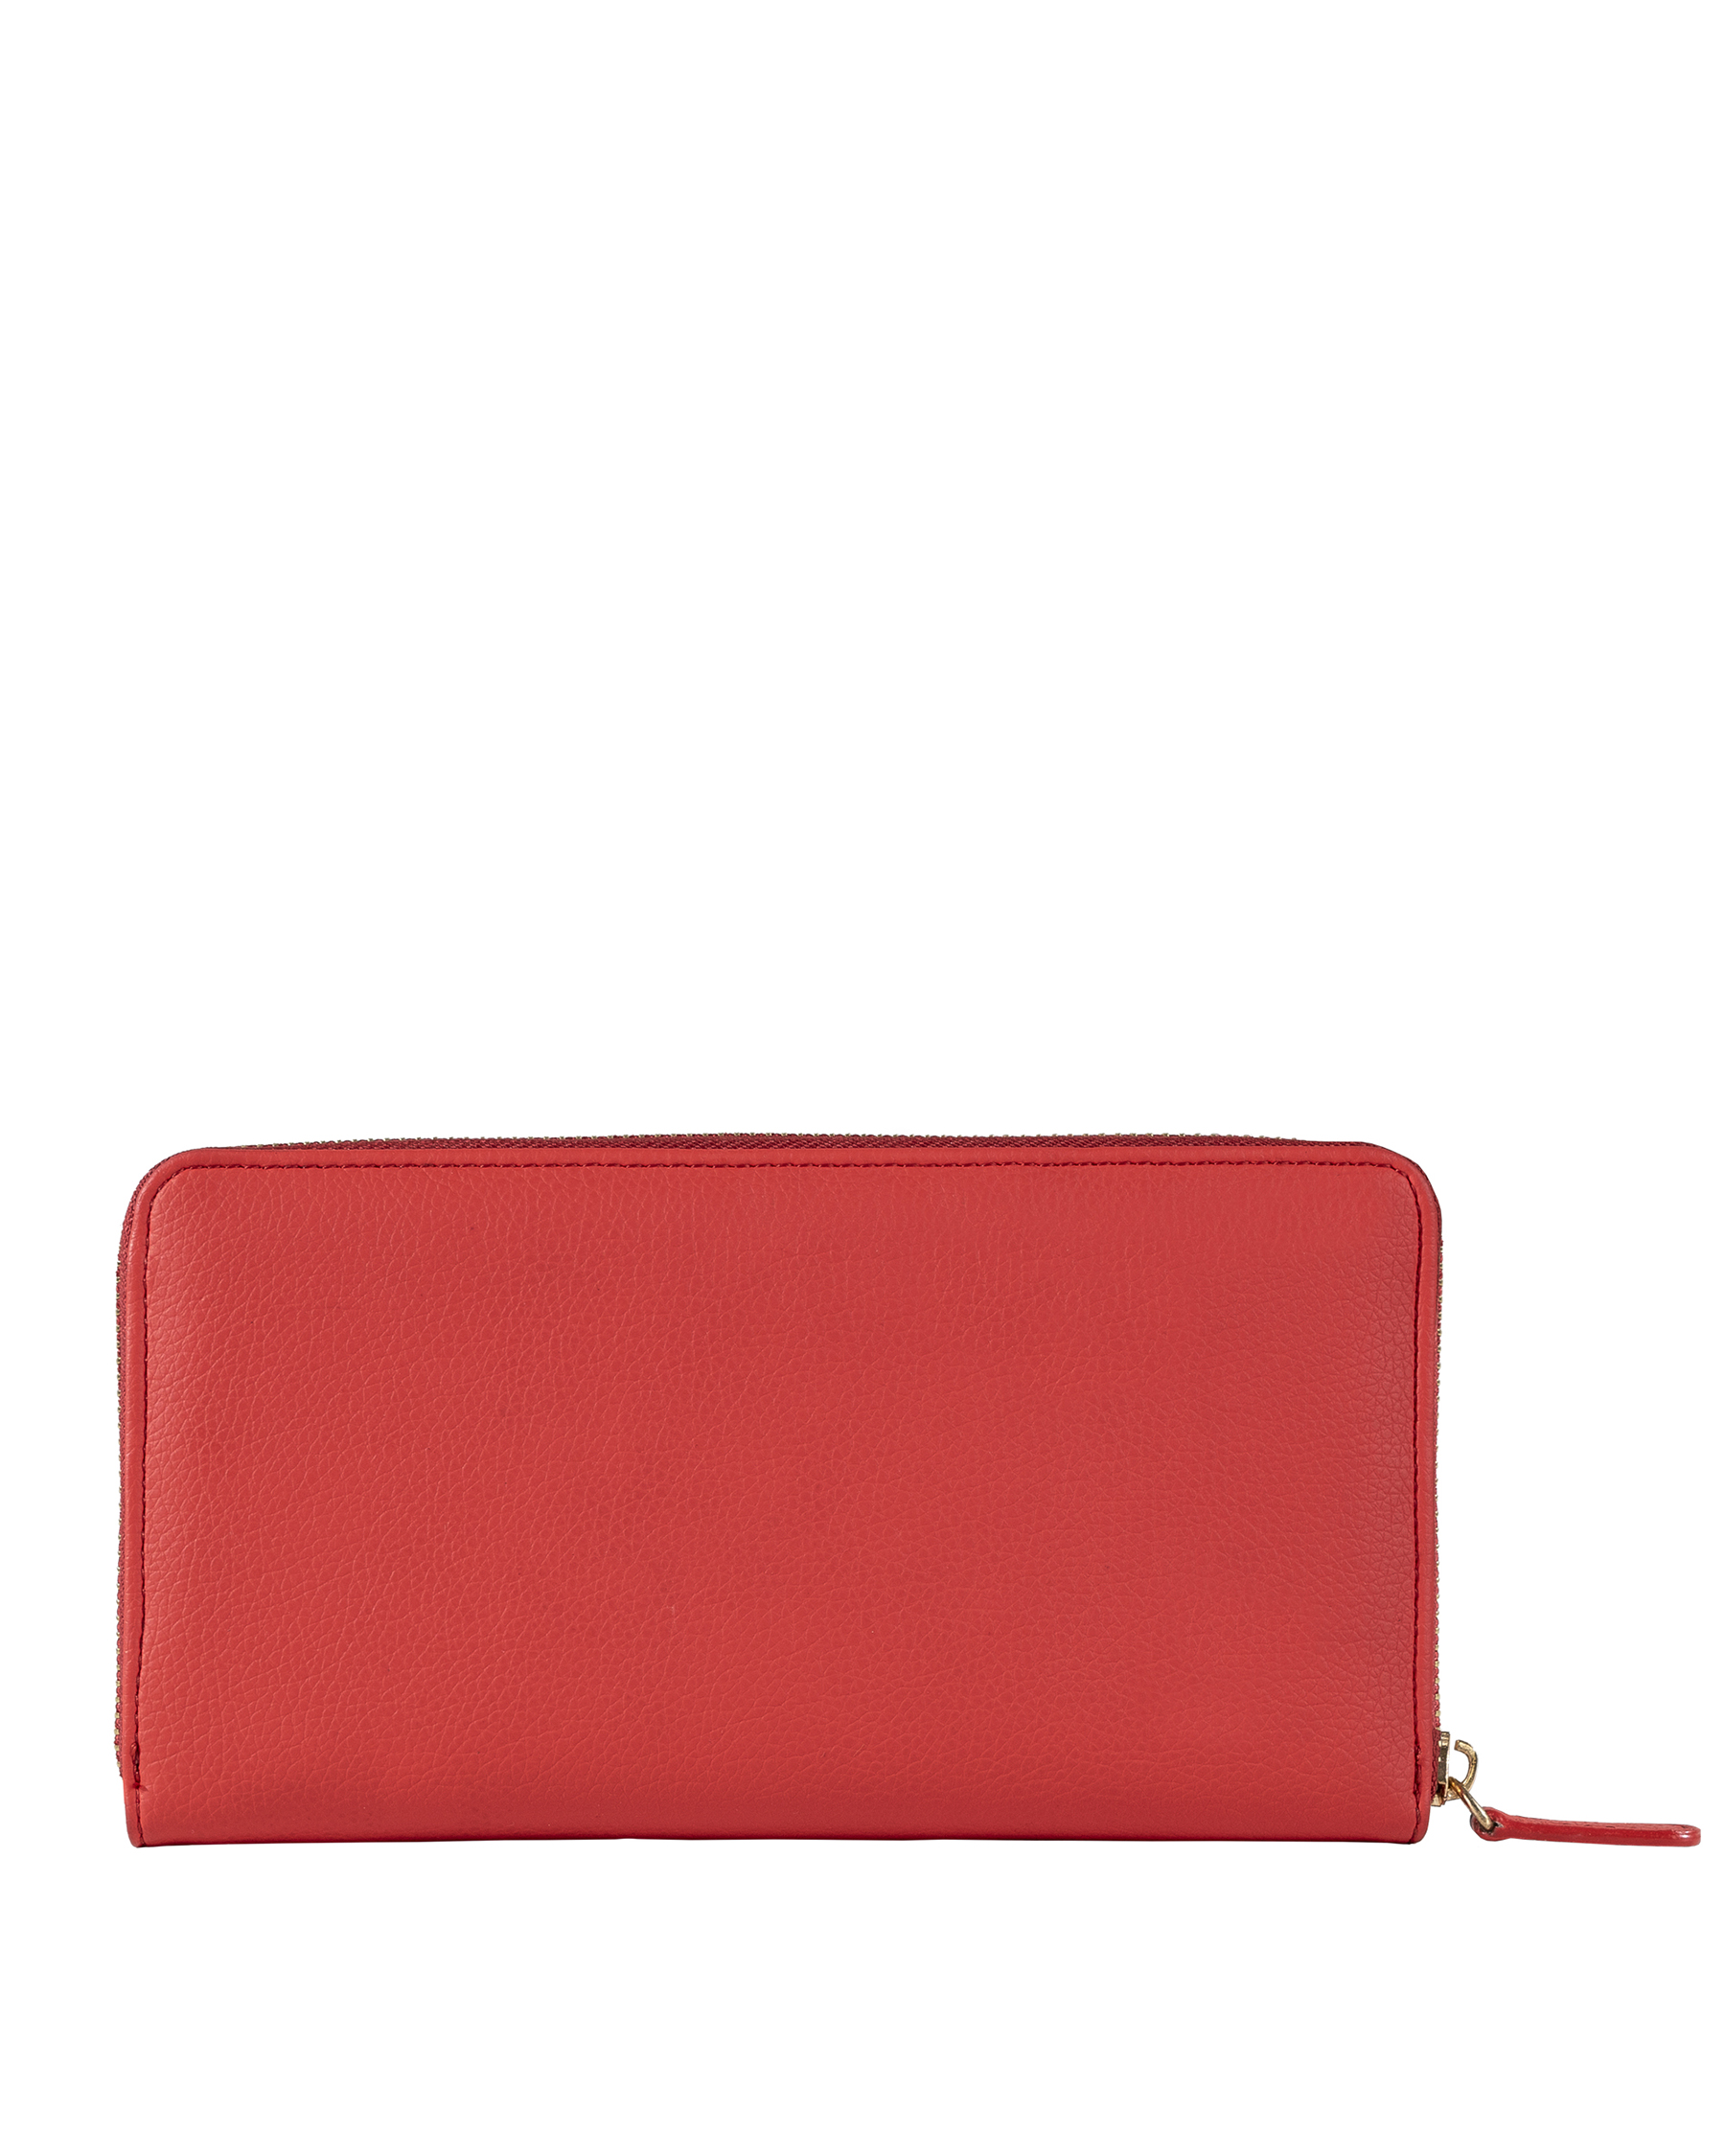 DirtyCoins Y Logo Zip Wallet - Red